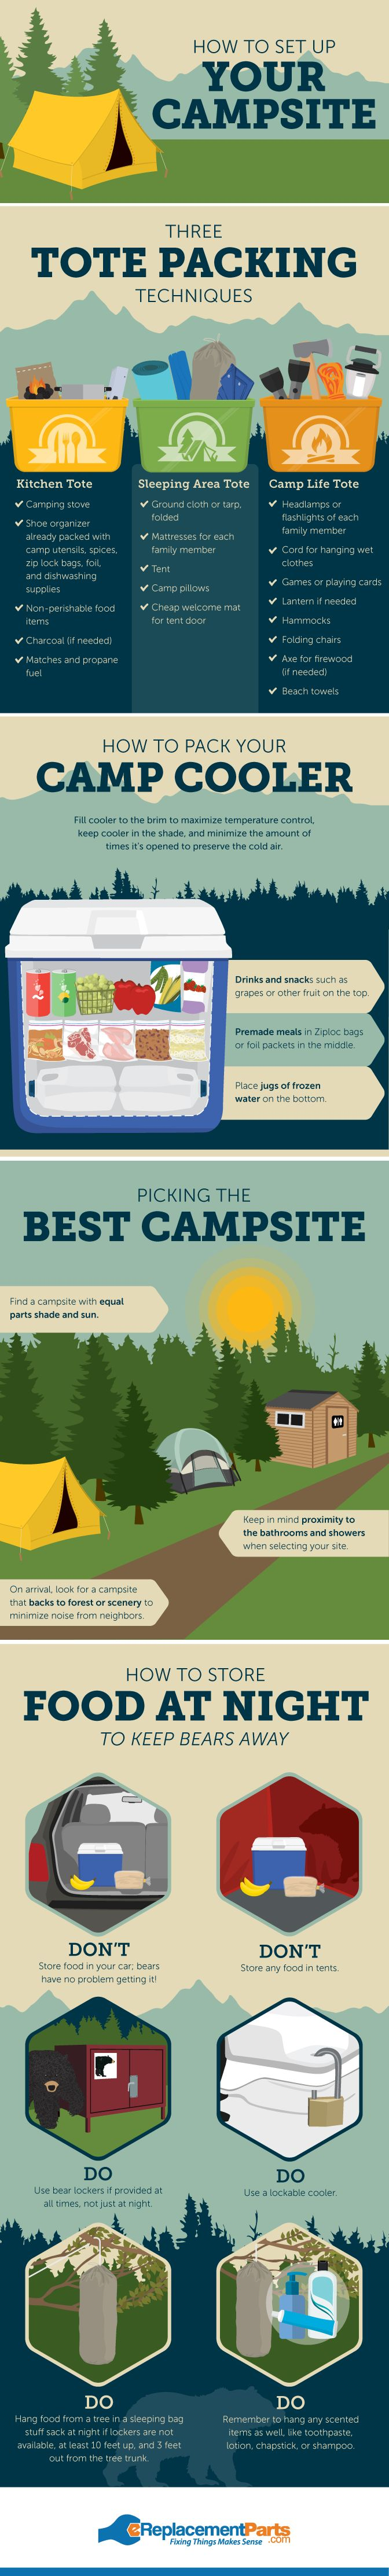 Do you know how to pack for a camping trip? Find tips for organizing gear, finding the right site, and setting up your campsite!